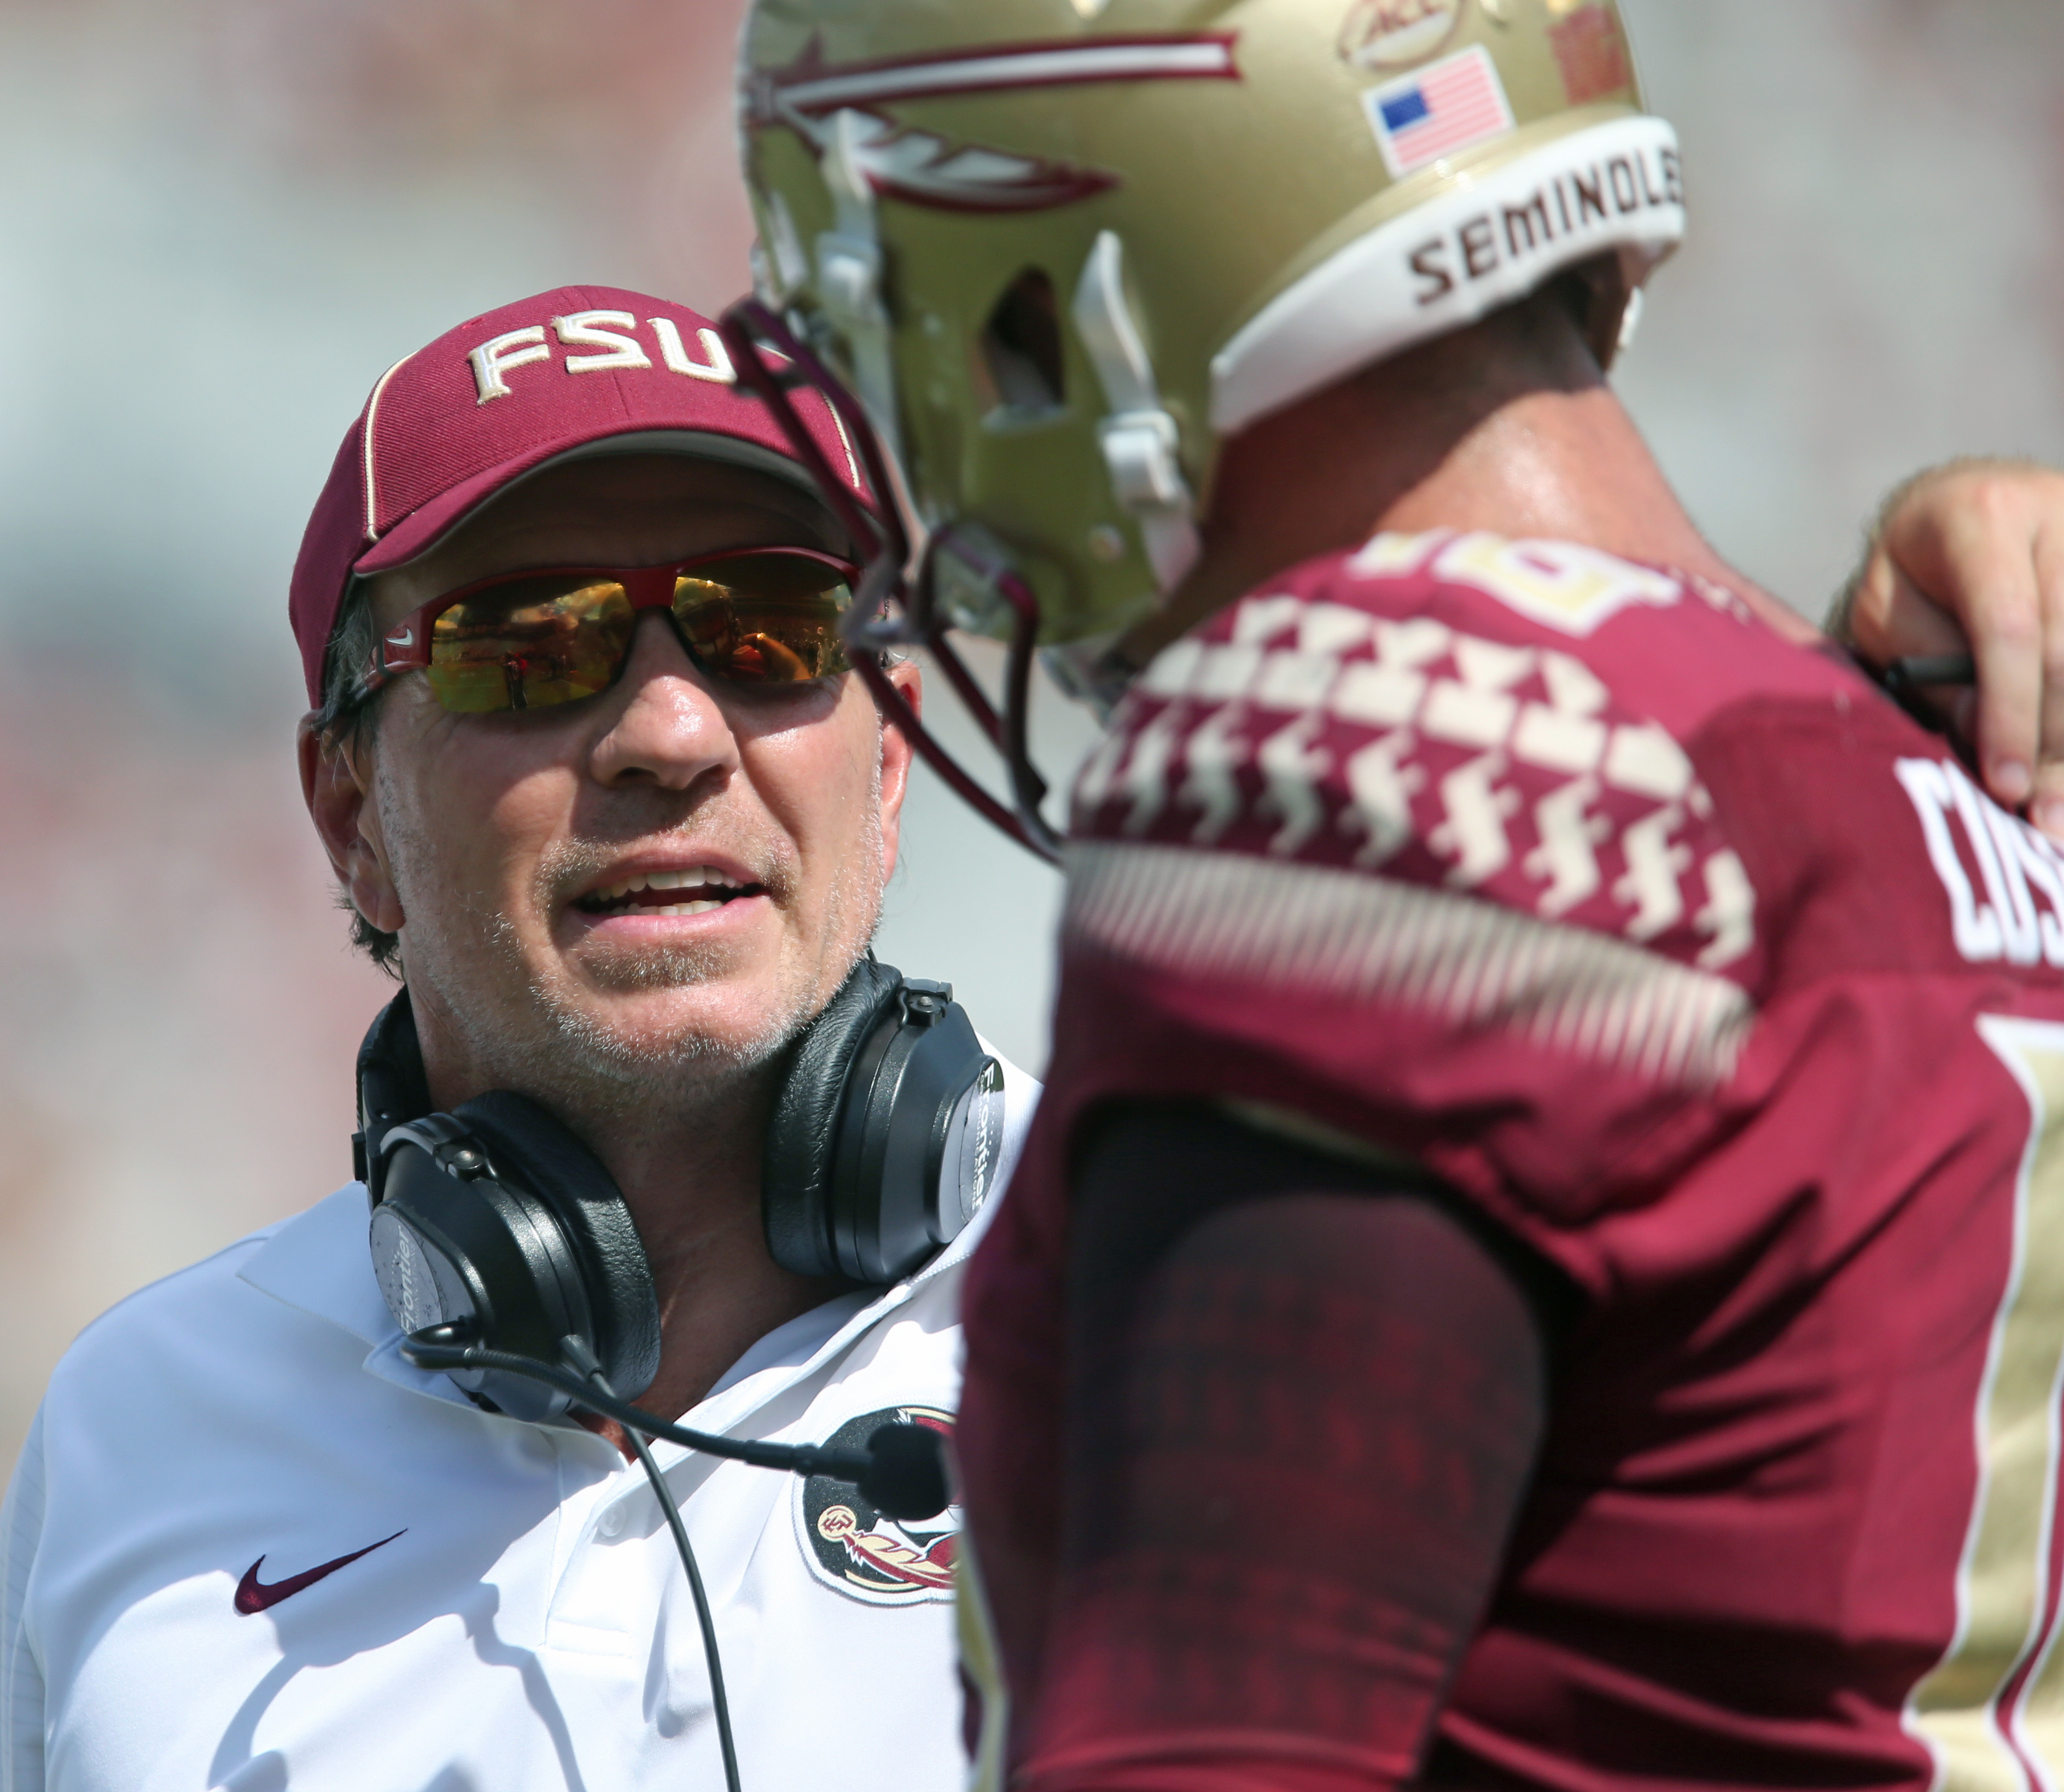 Florida State's head coach Jimbo Fisher talks with quarterback J.J. Cosentino during a time out while playing Charleston Southern in the second half of an NCAA college football game, Saturday, Sept. 10, 2016, in Tallahassee, Fla. Florida State won the gam